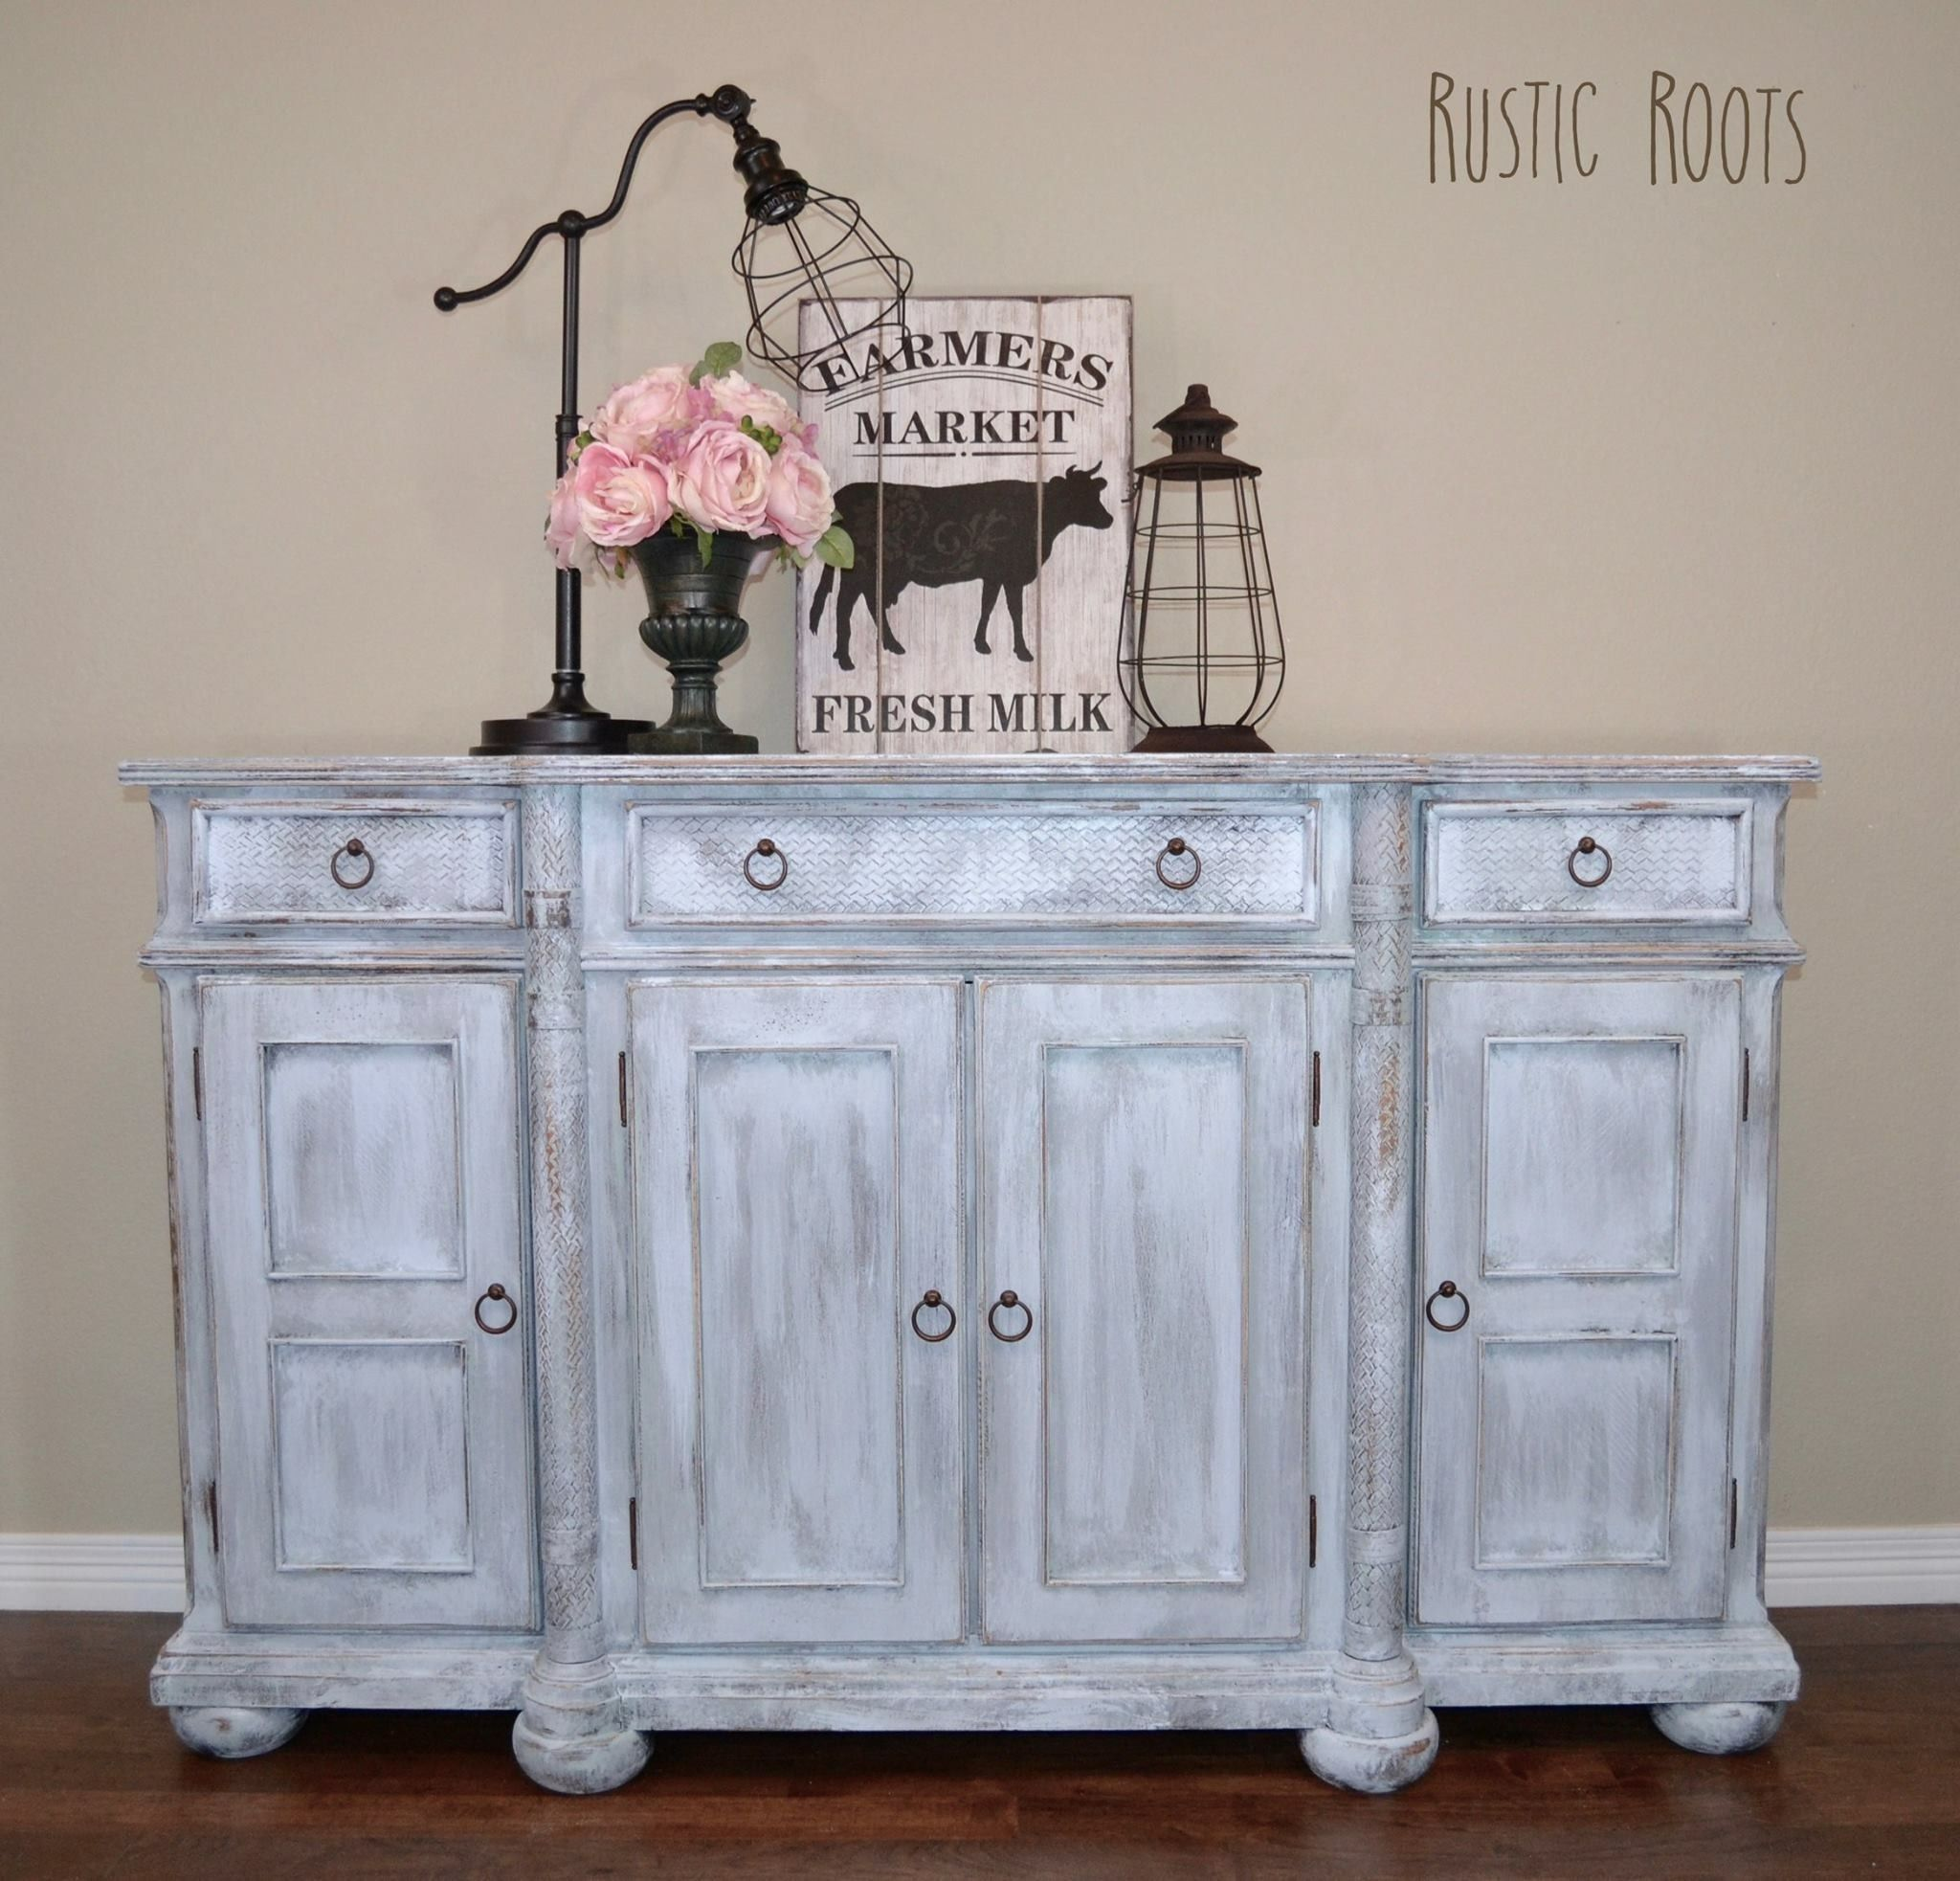 Based solely on looks this stunning vintage sideboardbuffet would